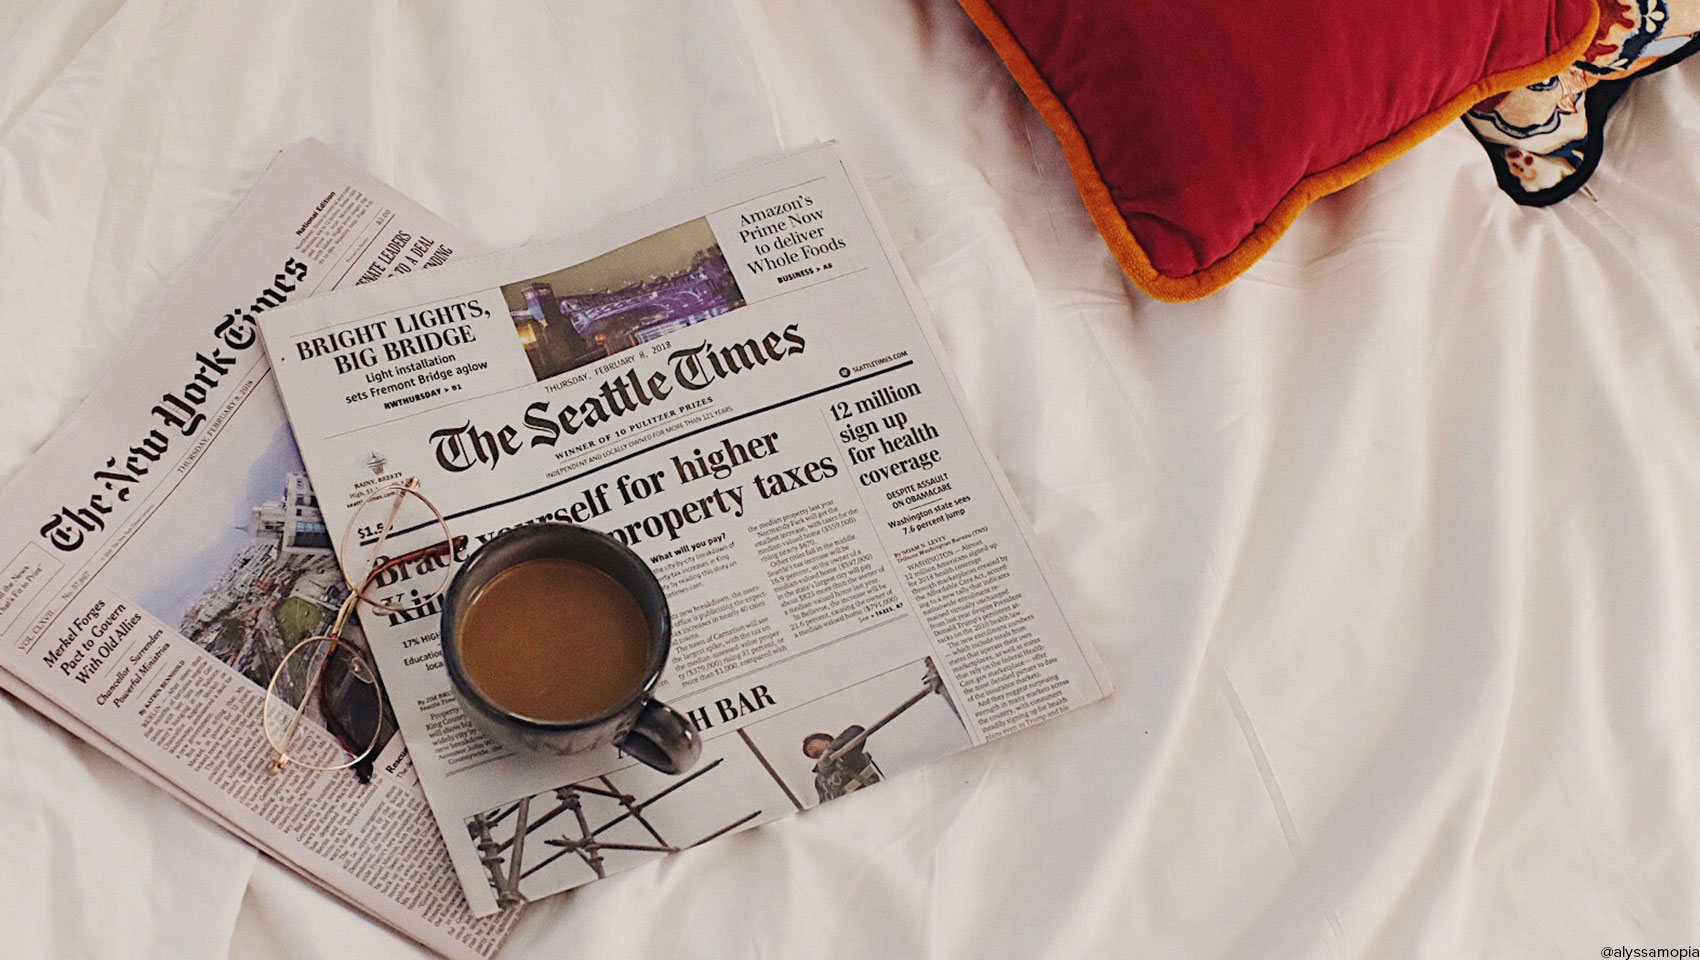 Hotel Monaco guestroom bed with local and national newspaper, cup of coffee and spectacles neatly arranged